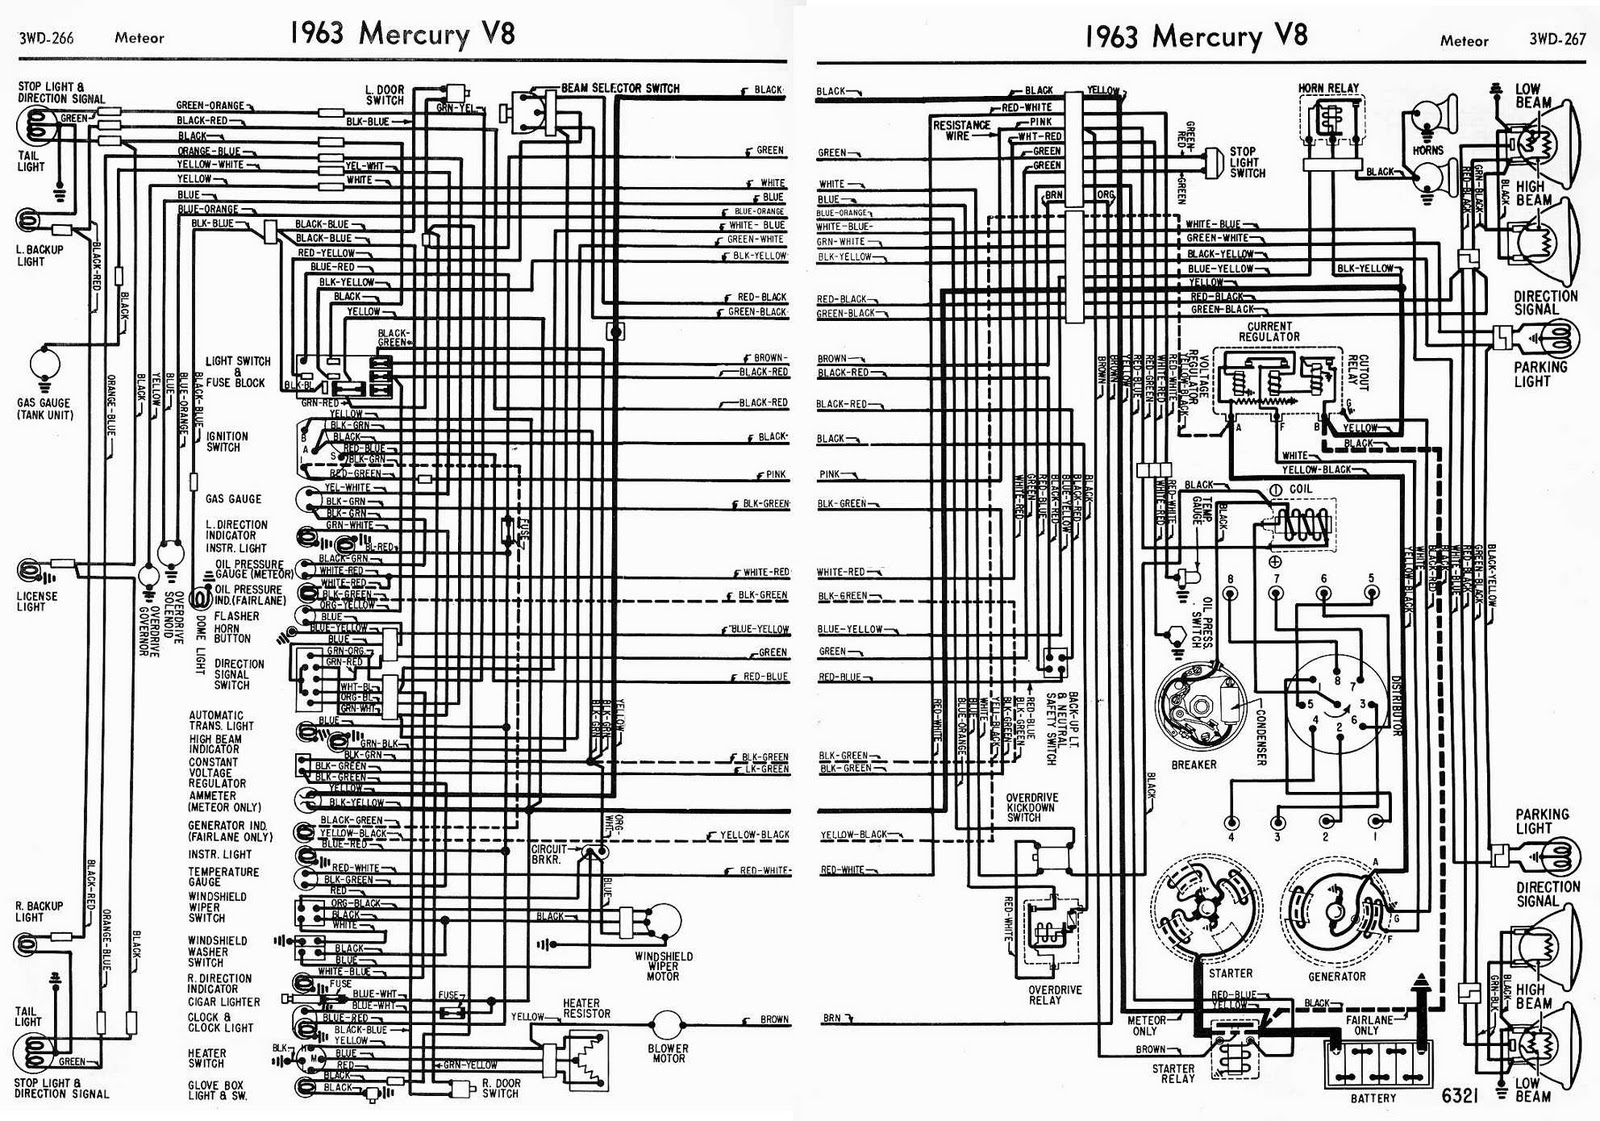 small resolution of wrg 3427 1981 ford f100 wiring diagram1981 ford econoline van wiring diagram electrical wiring diagrams